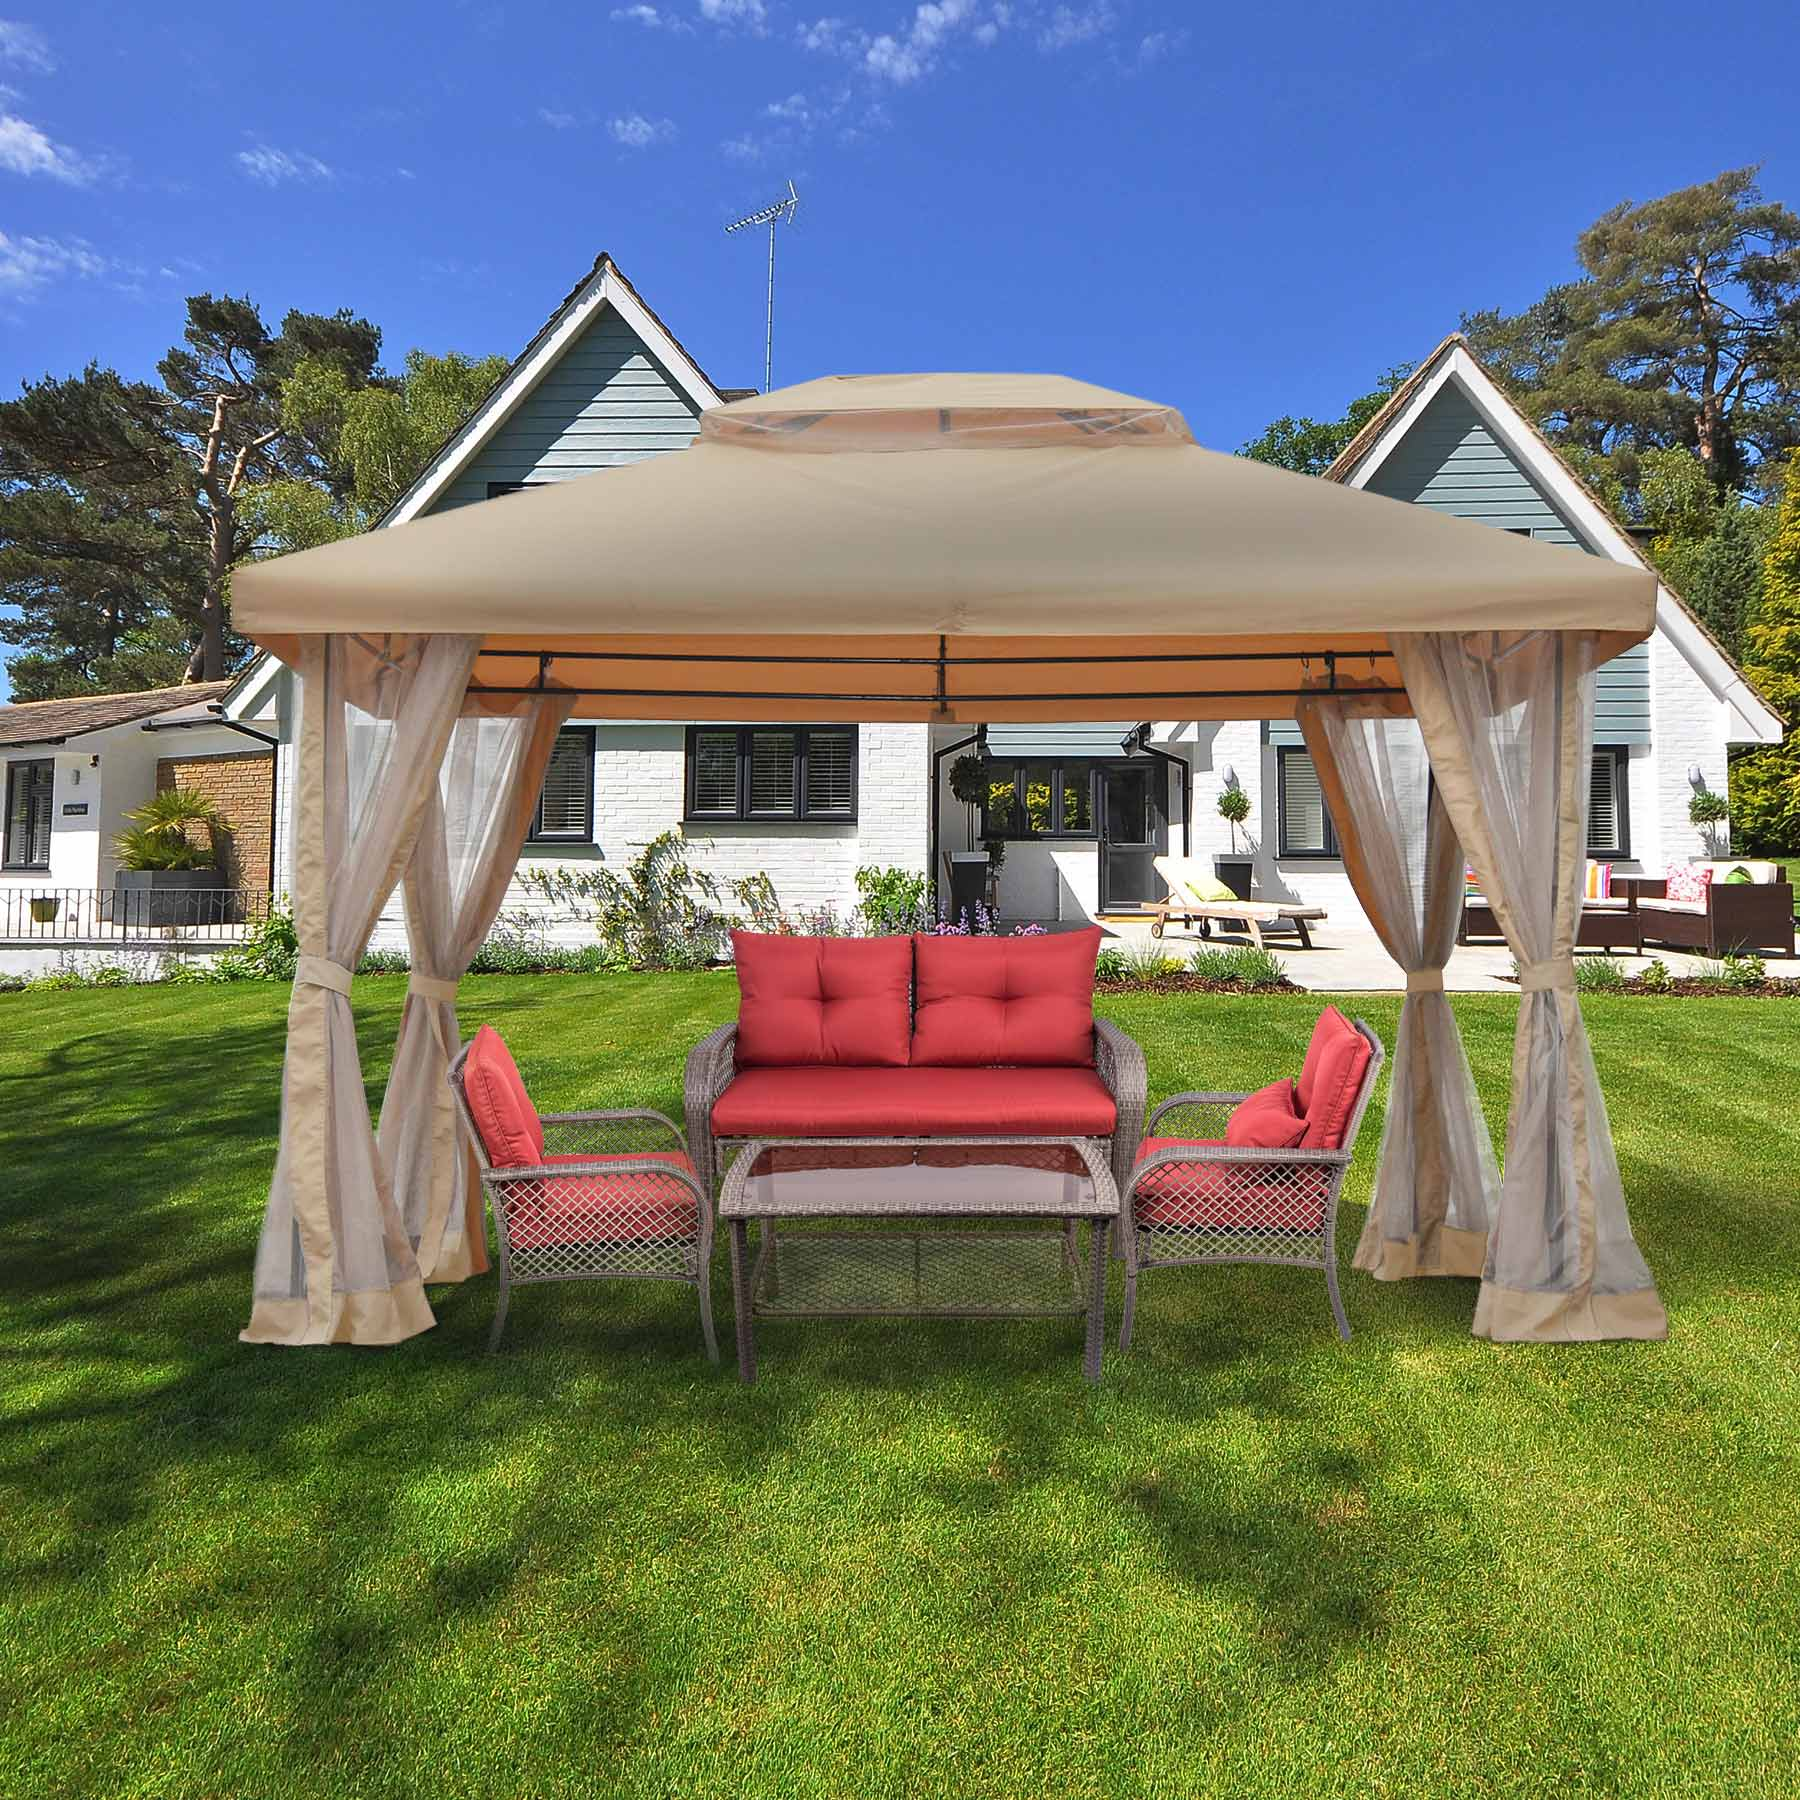 Garden Outdoor Gazebo Patio Canopy 10' x 12' with Sheer Curtain, Fully Enclosed by CO-Z